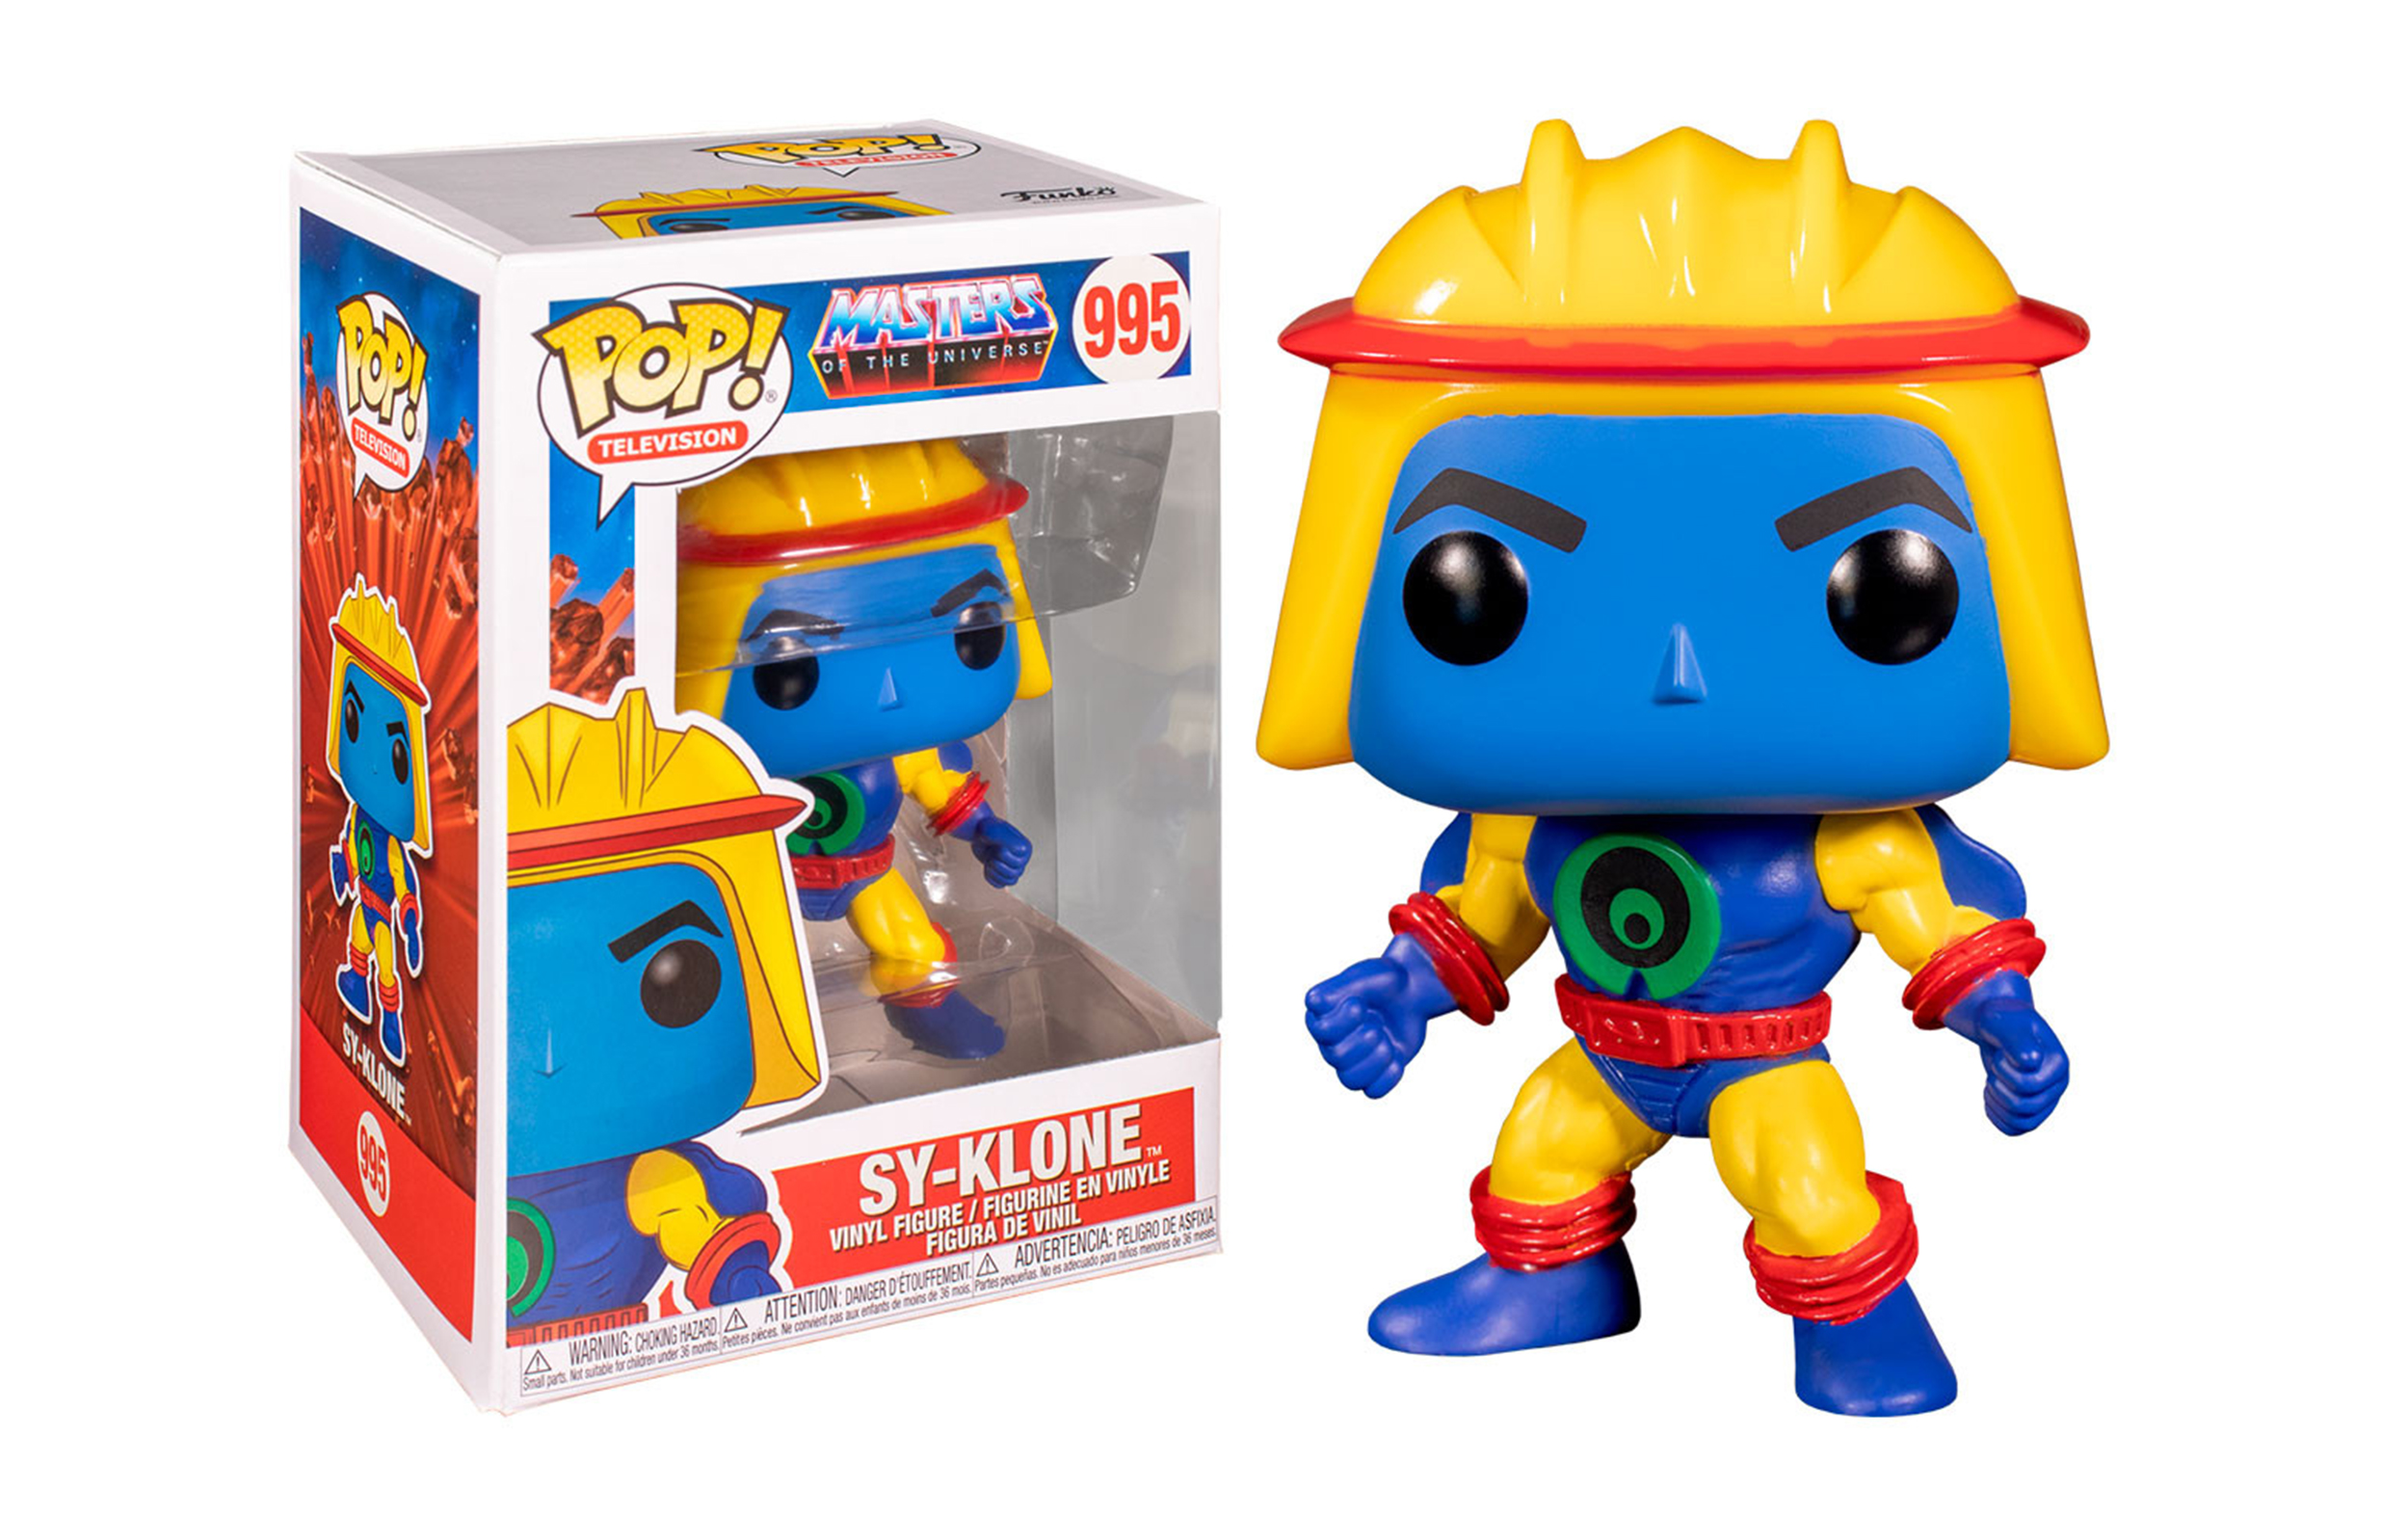 Masters of the Universe Sy-Klone 995 Funko POP Vinyl Figure